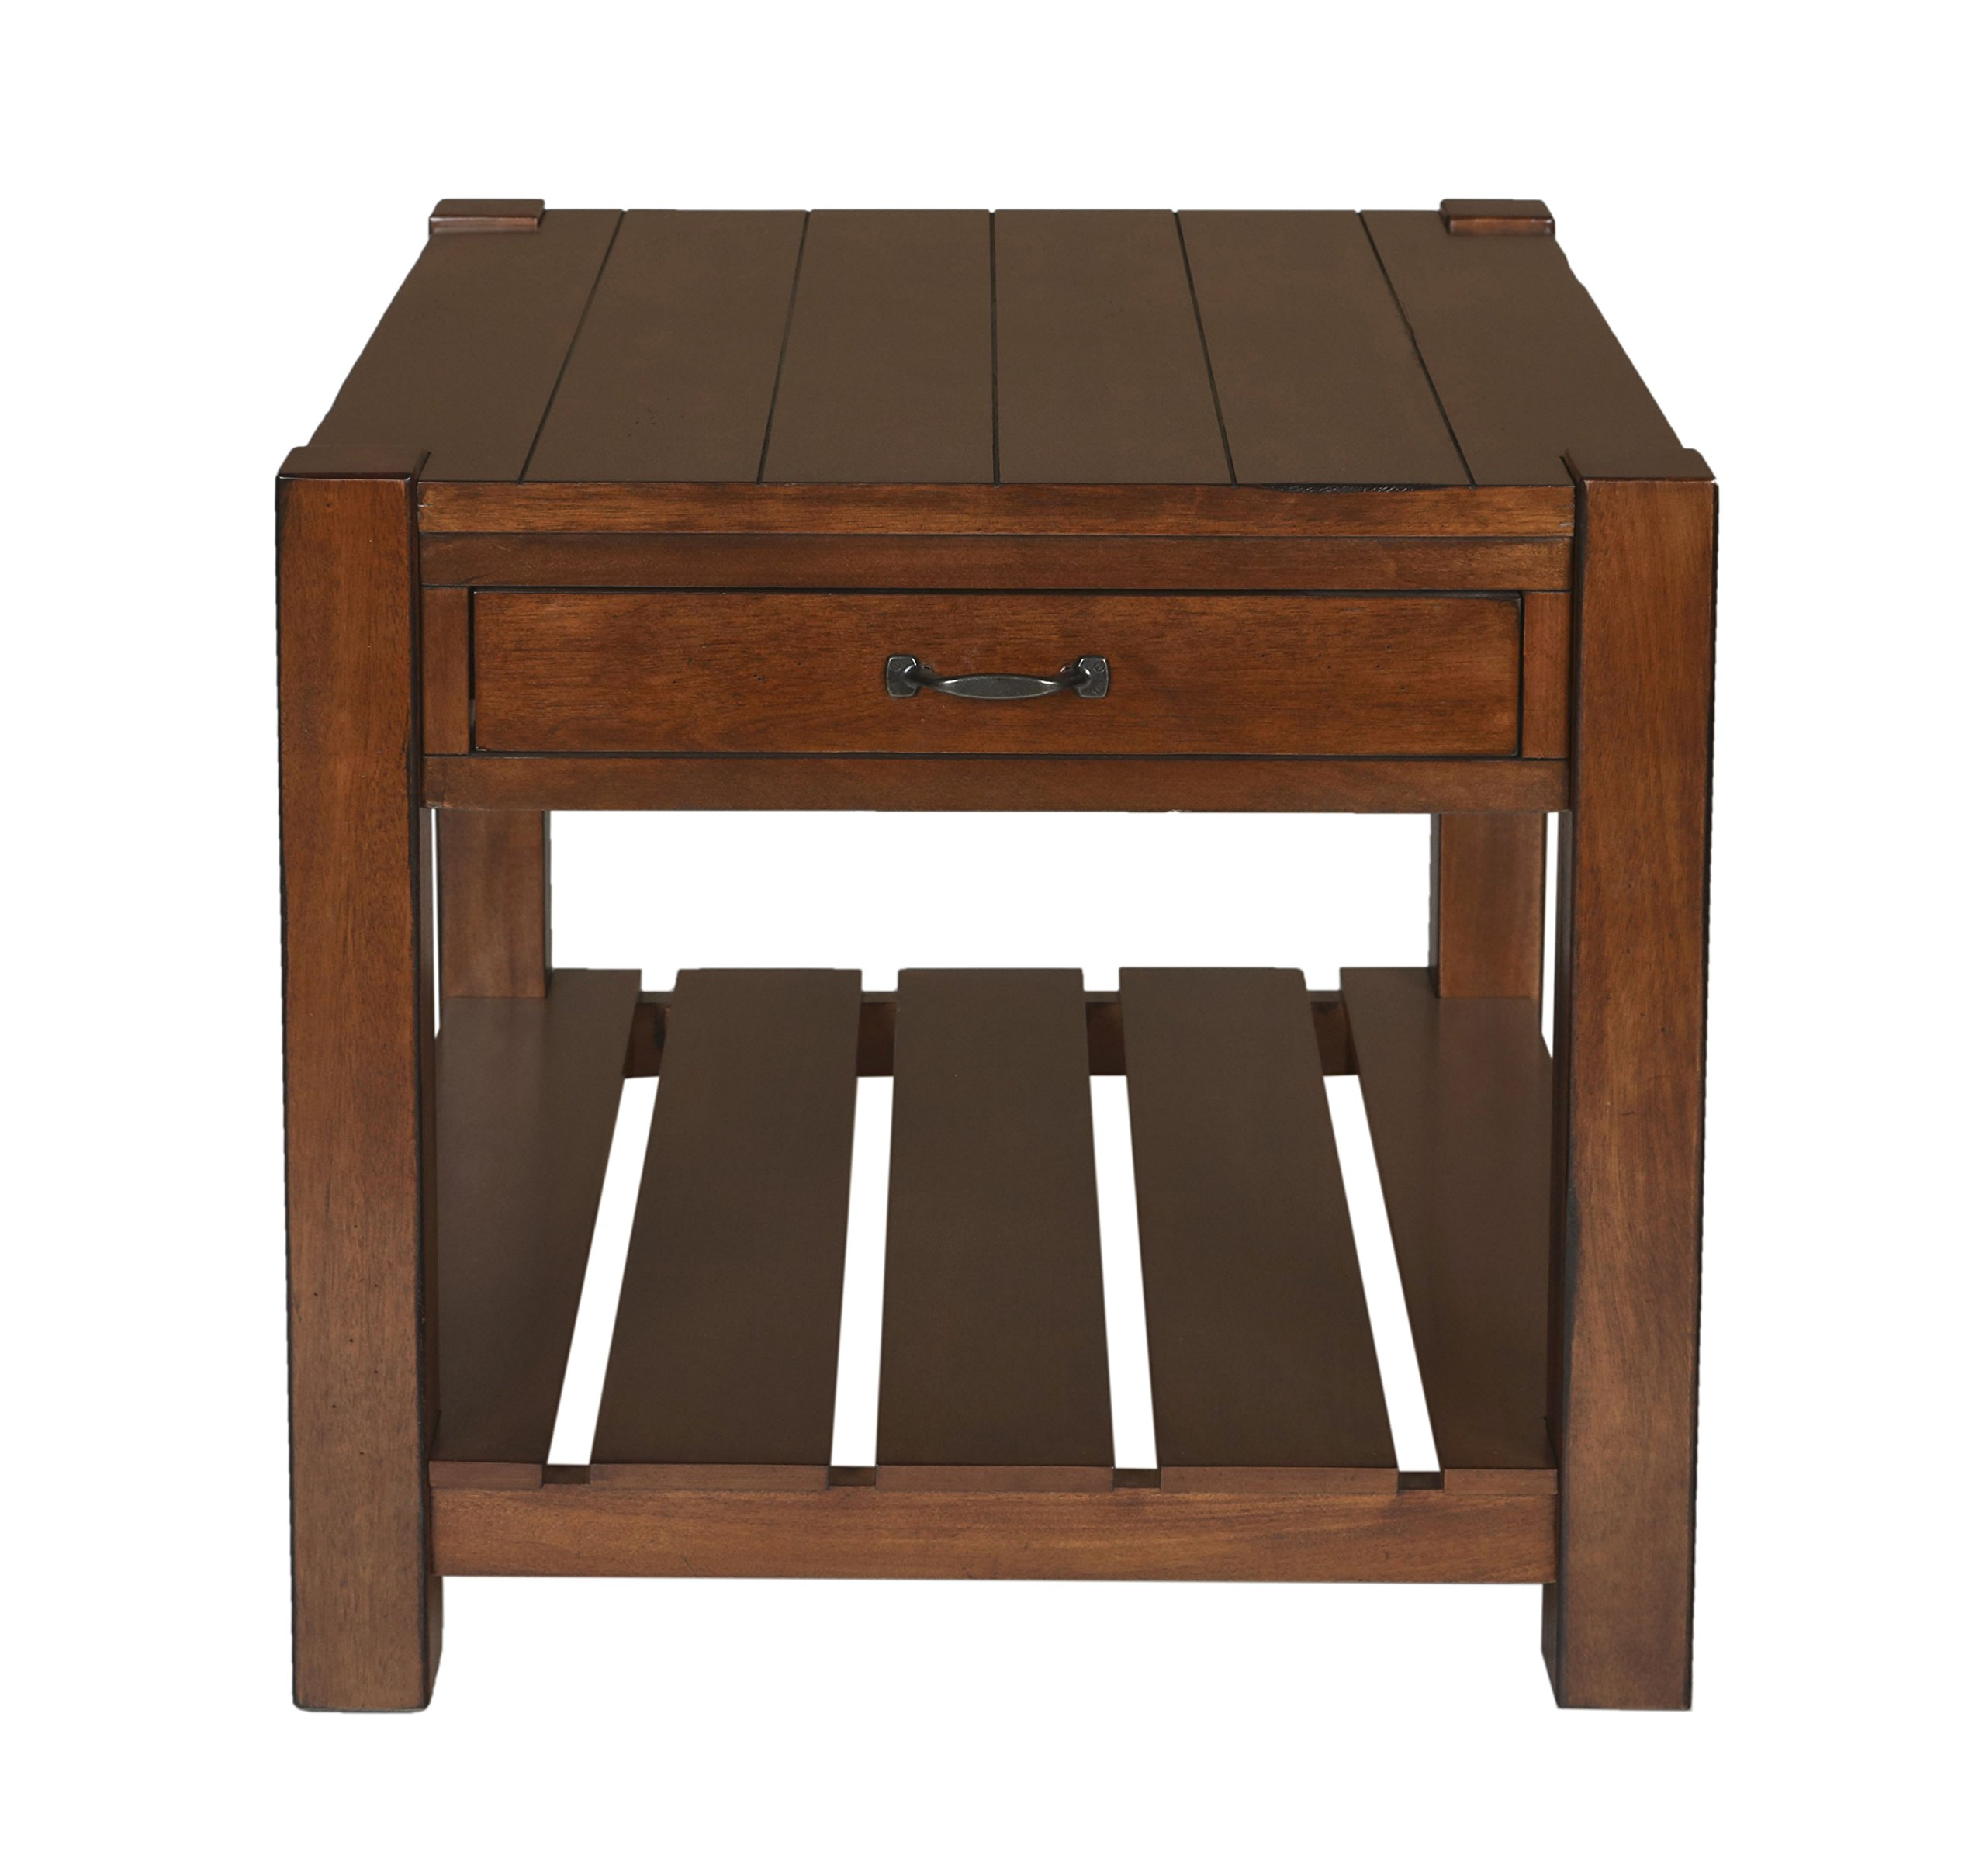 New Classic Giverny End Table, African Honey - Beautifully crafted from African Okoume hardwood solids and veneers Finished in a rich African Honey stain to compliment any décor Convenient Storage drawer for addition items to be tuck away from view - living-room-furniture, living-room, end-tables - 81QVq5sw5uL -